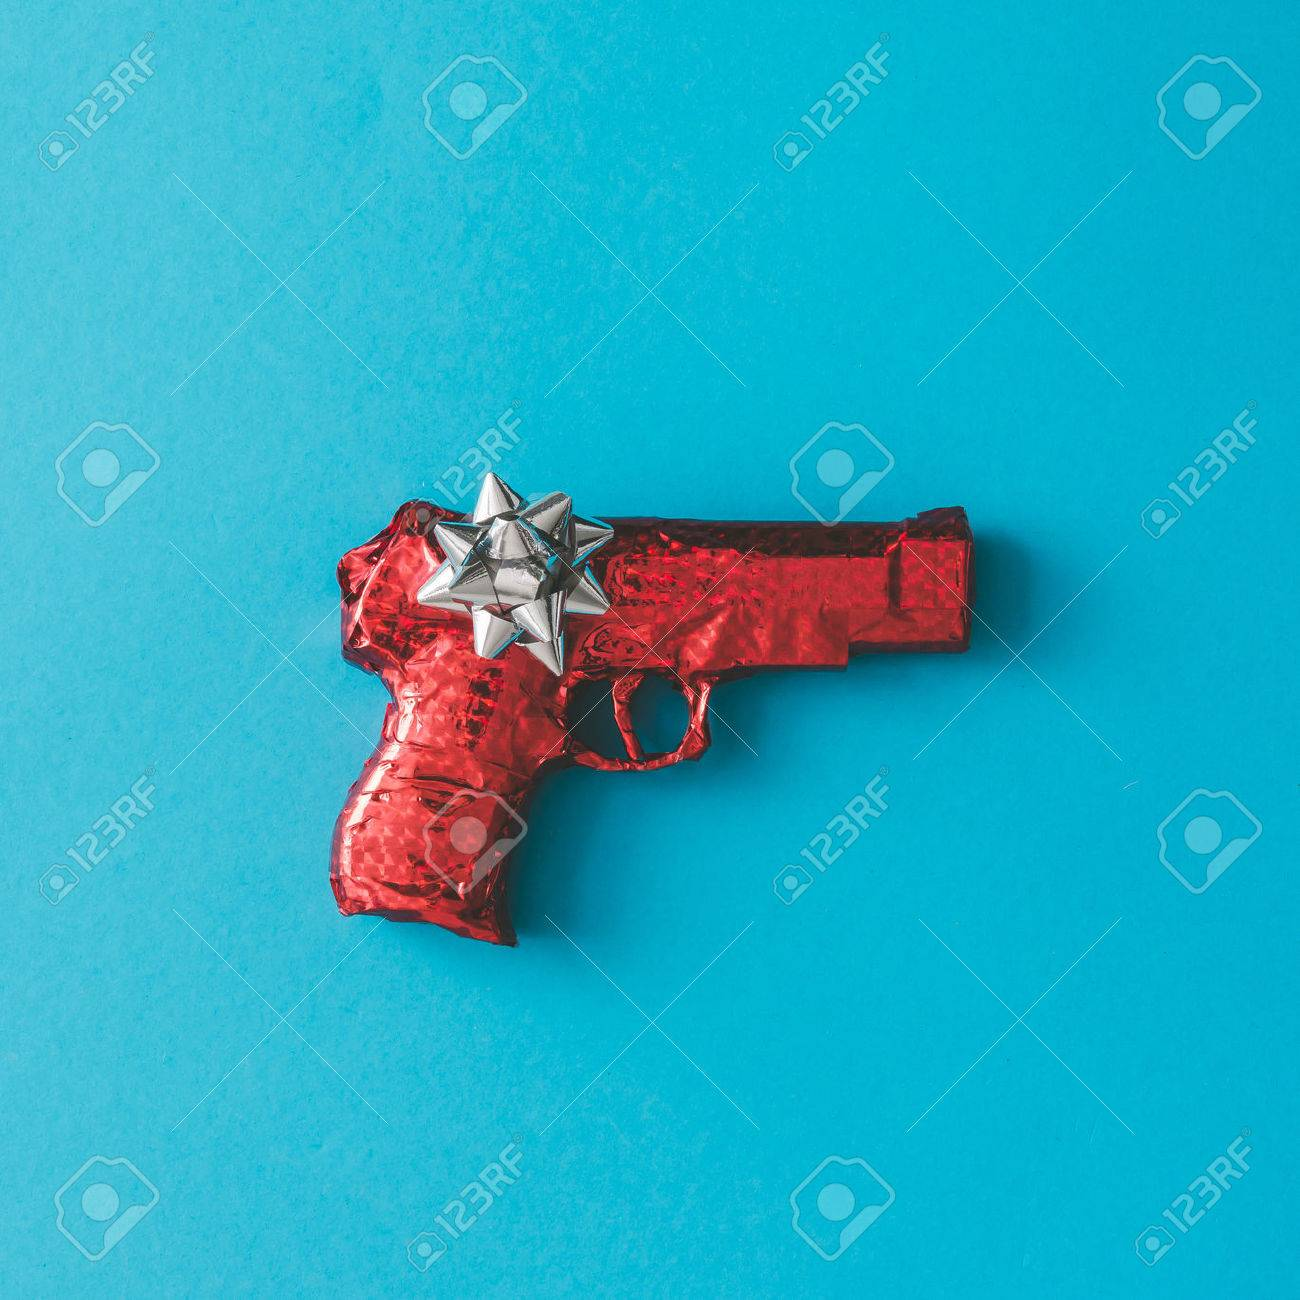 Gun wrapped in red paper with bow on blue background. Flat lay Christmas concept. - 68074981